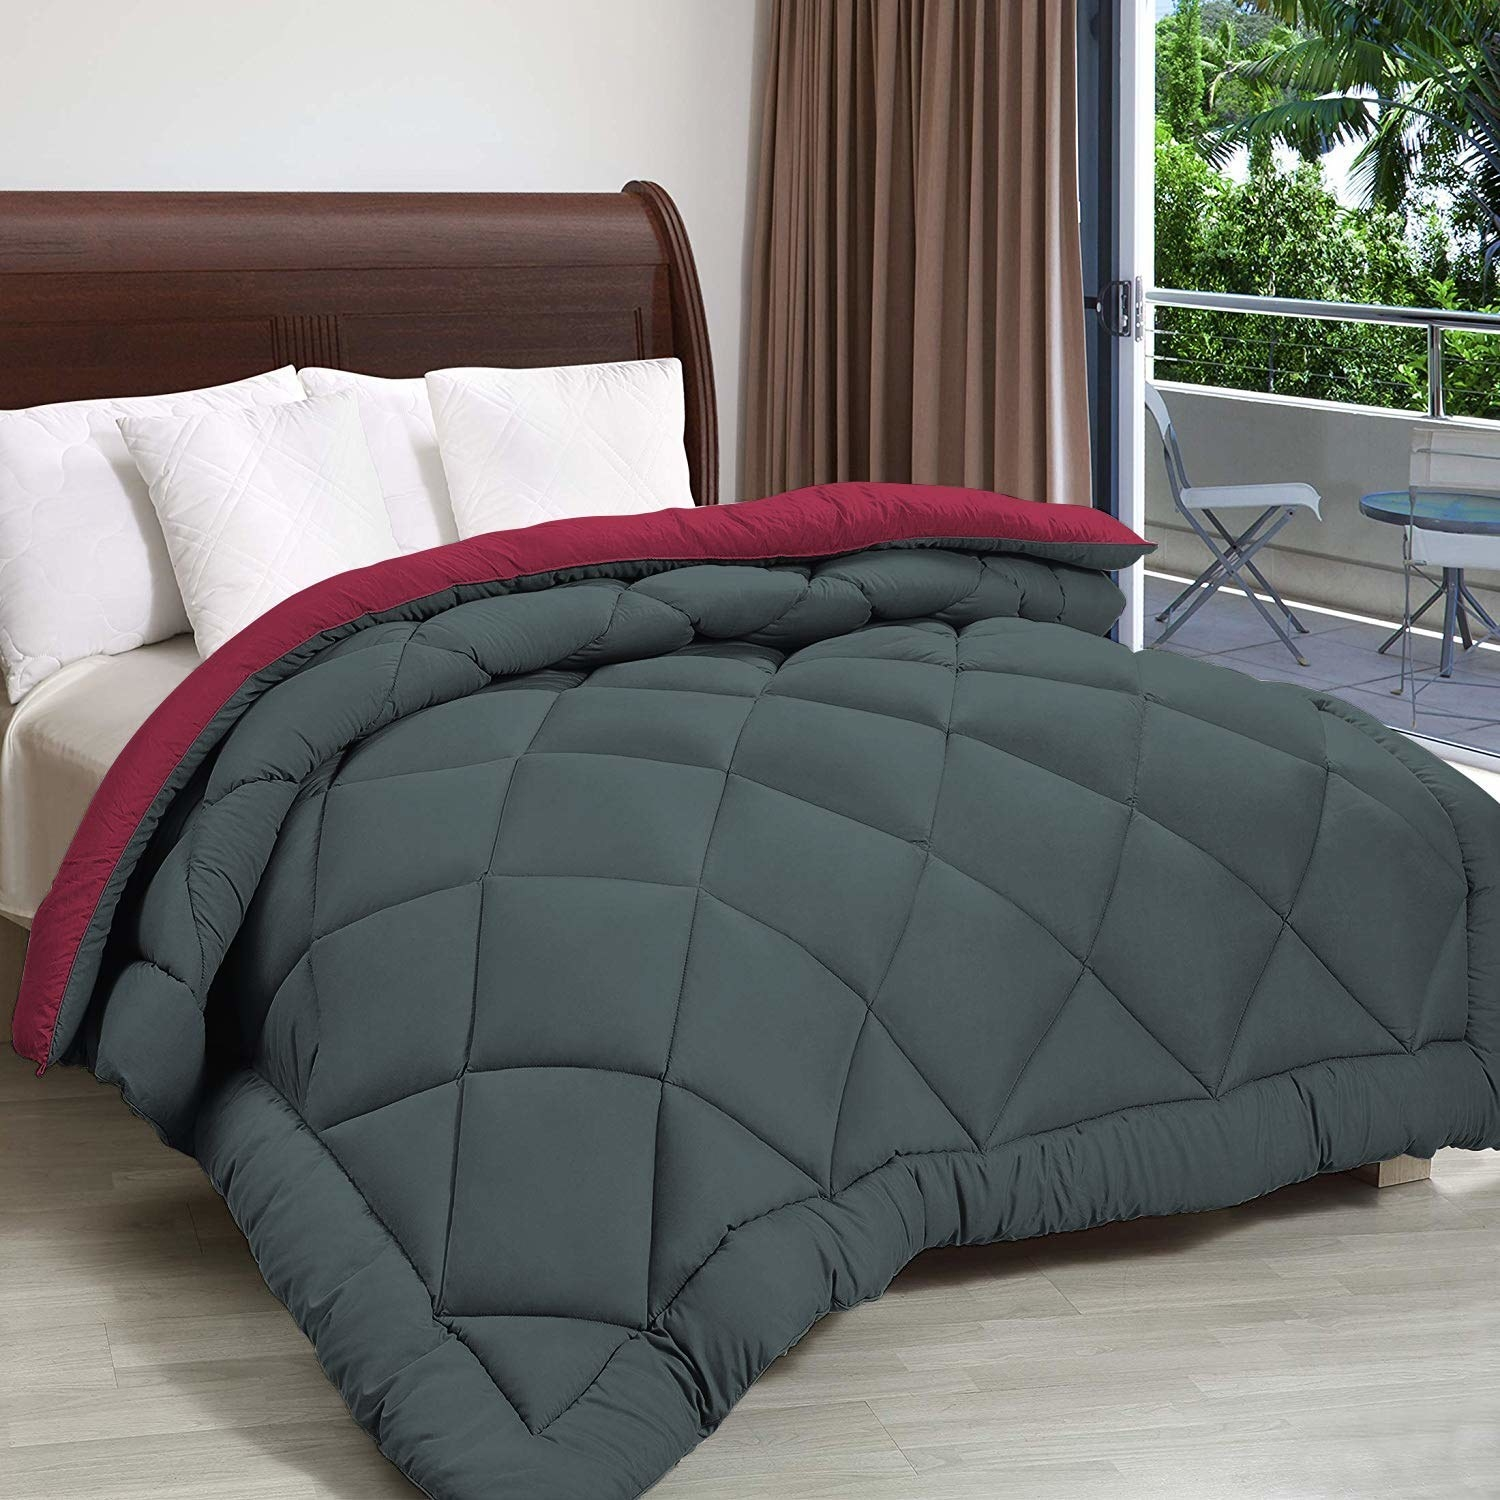 The pink-grey comforter kept on a bed.